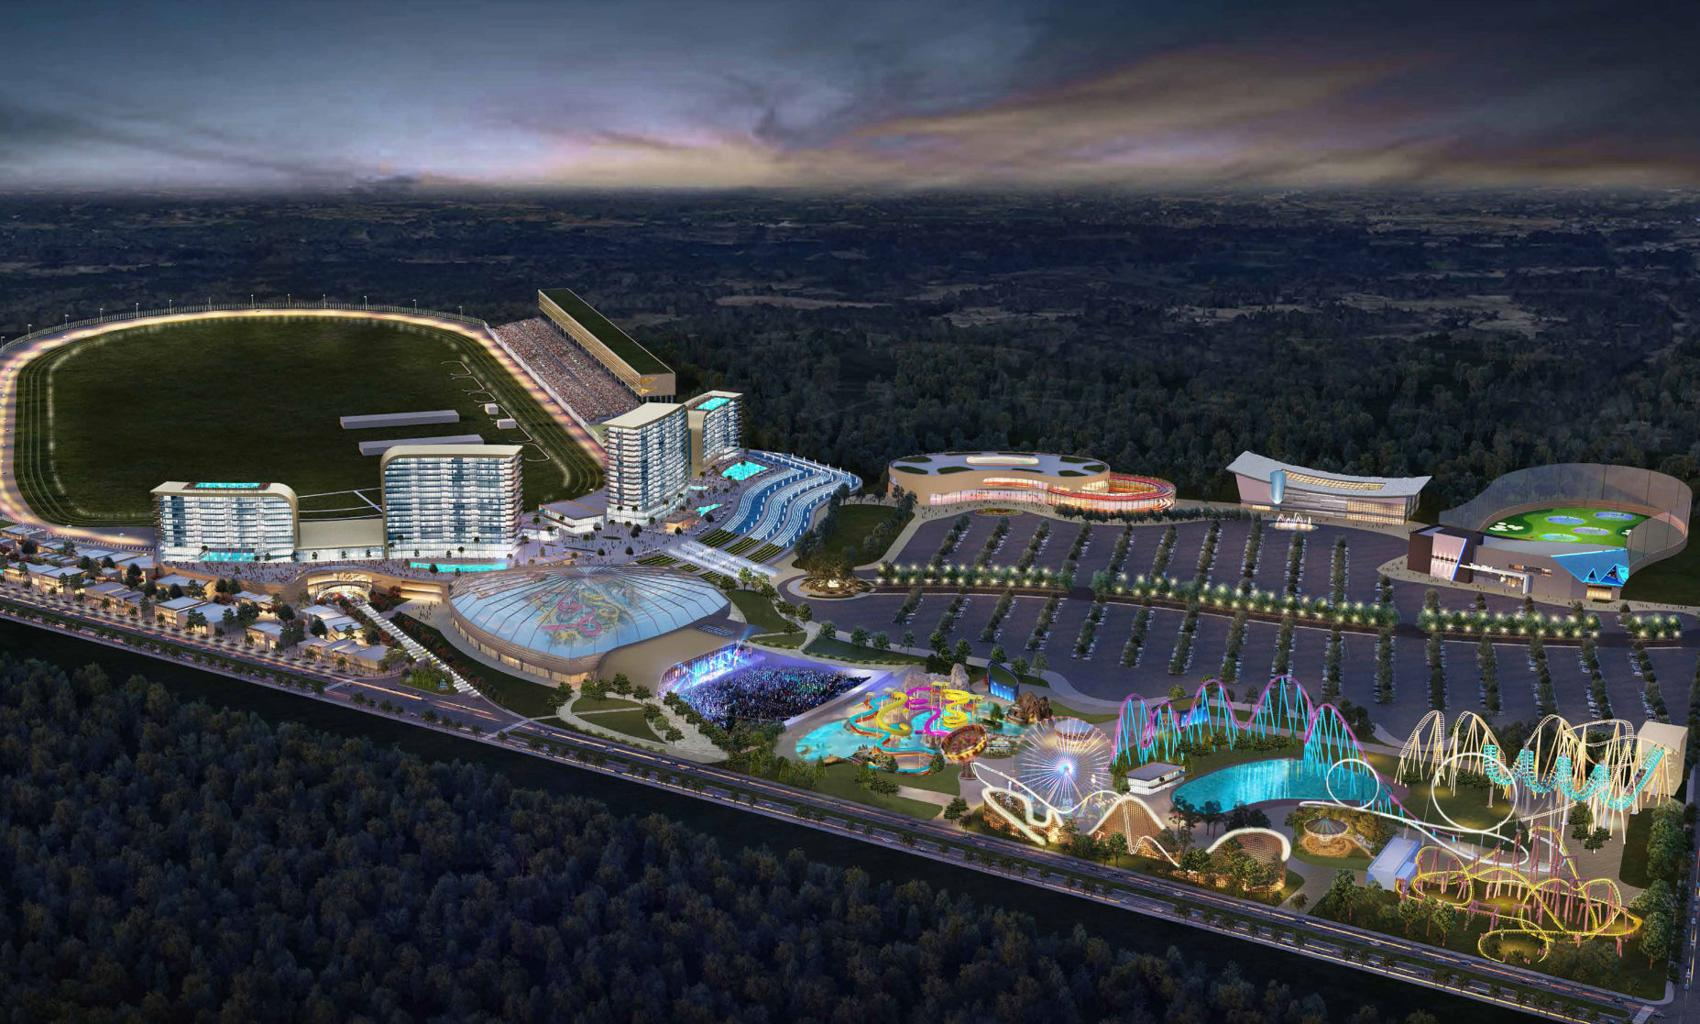 A colorful rendering of a casino resort attraction bordering the racetrack, replete with its own amusement park.